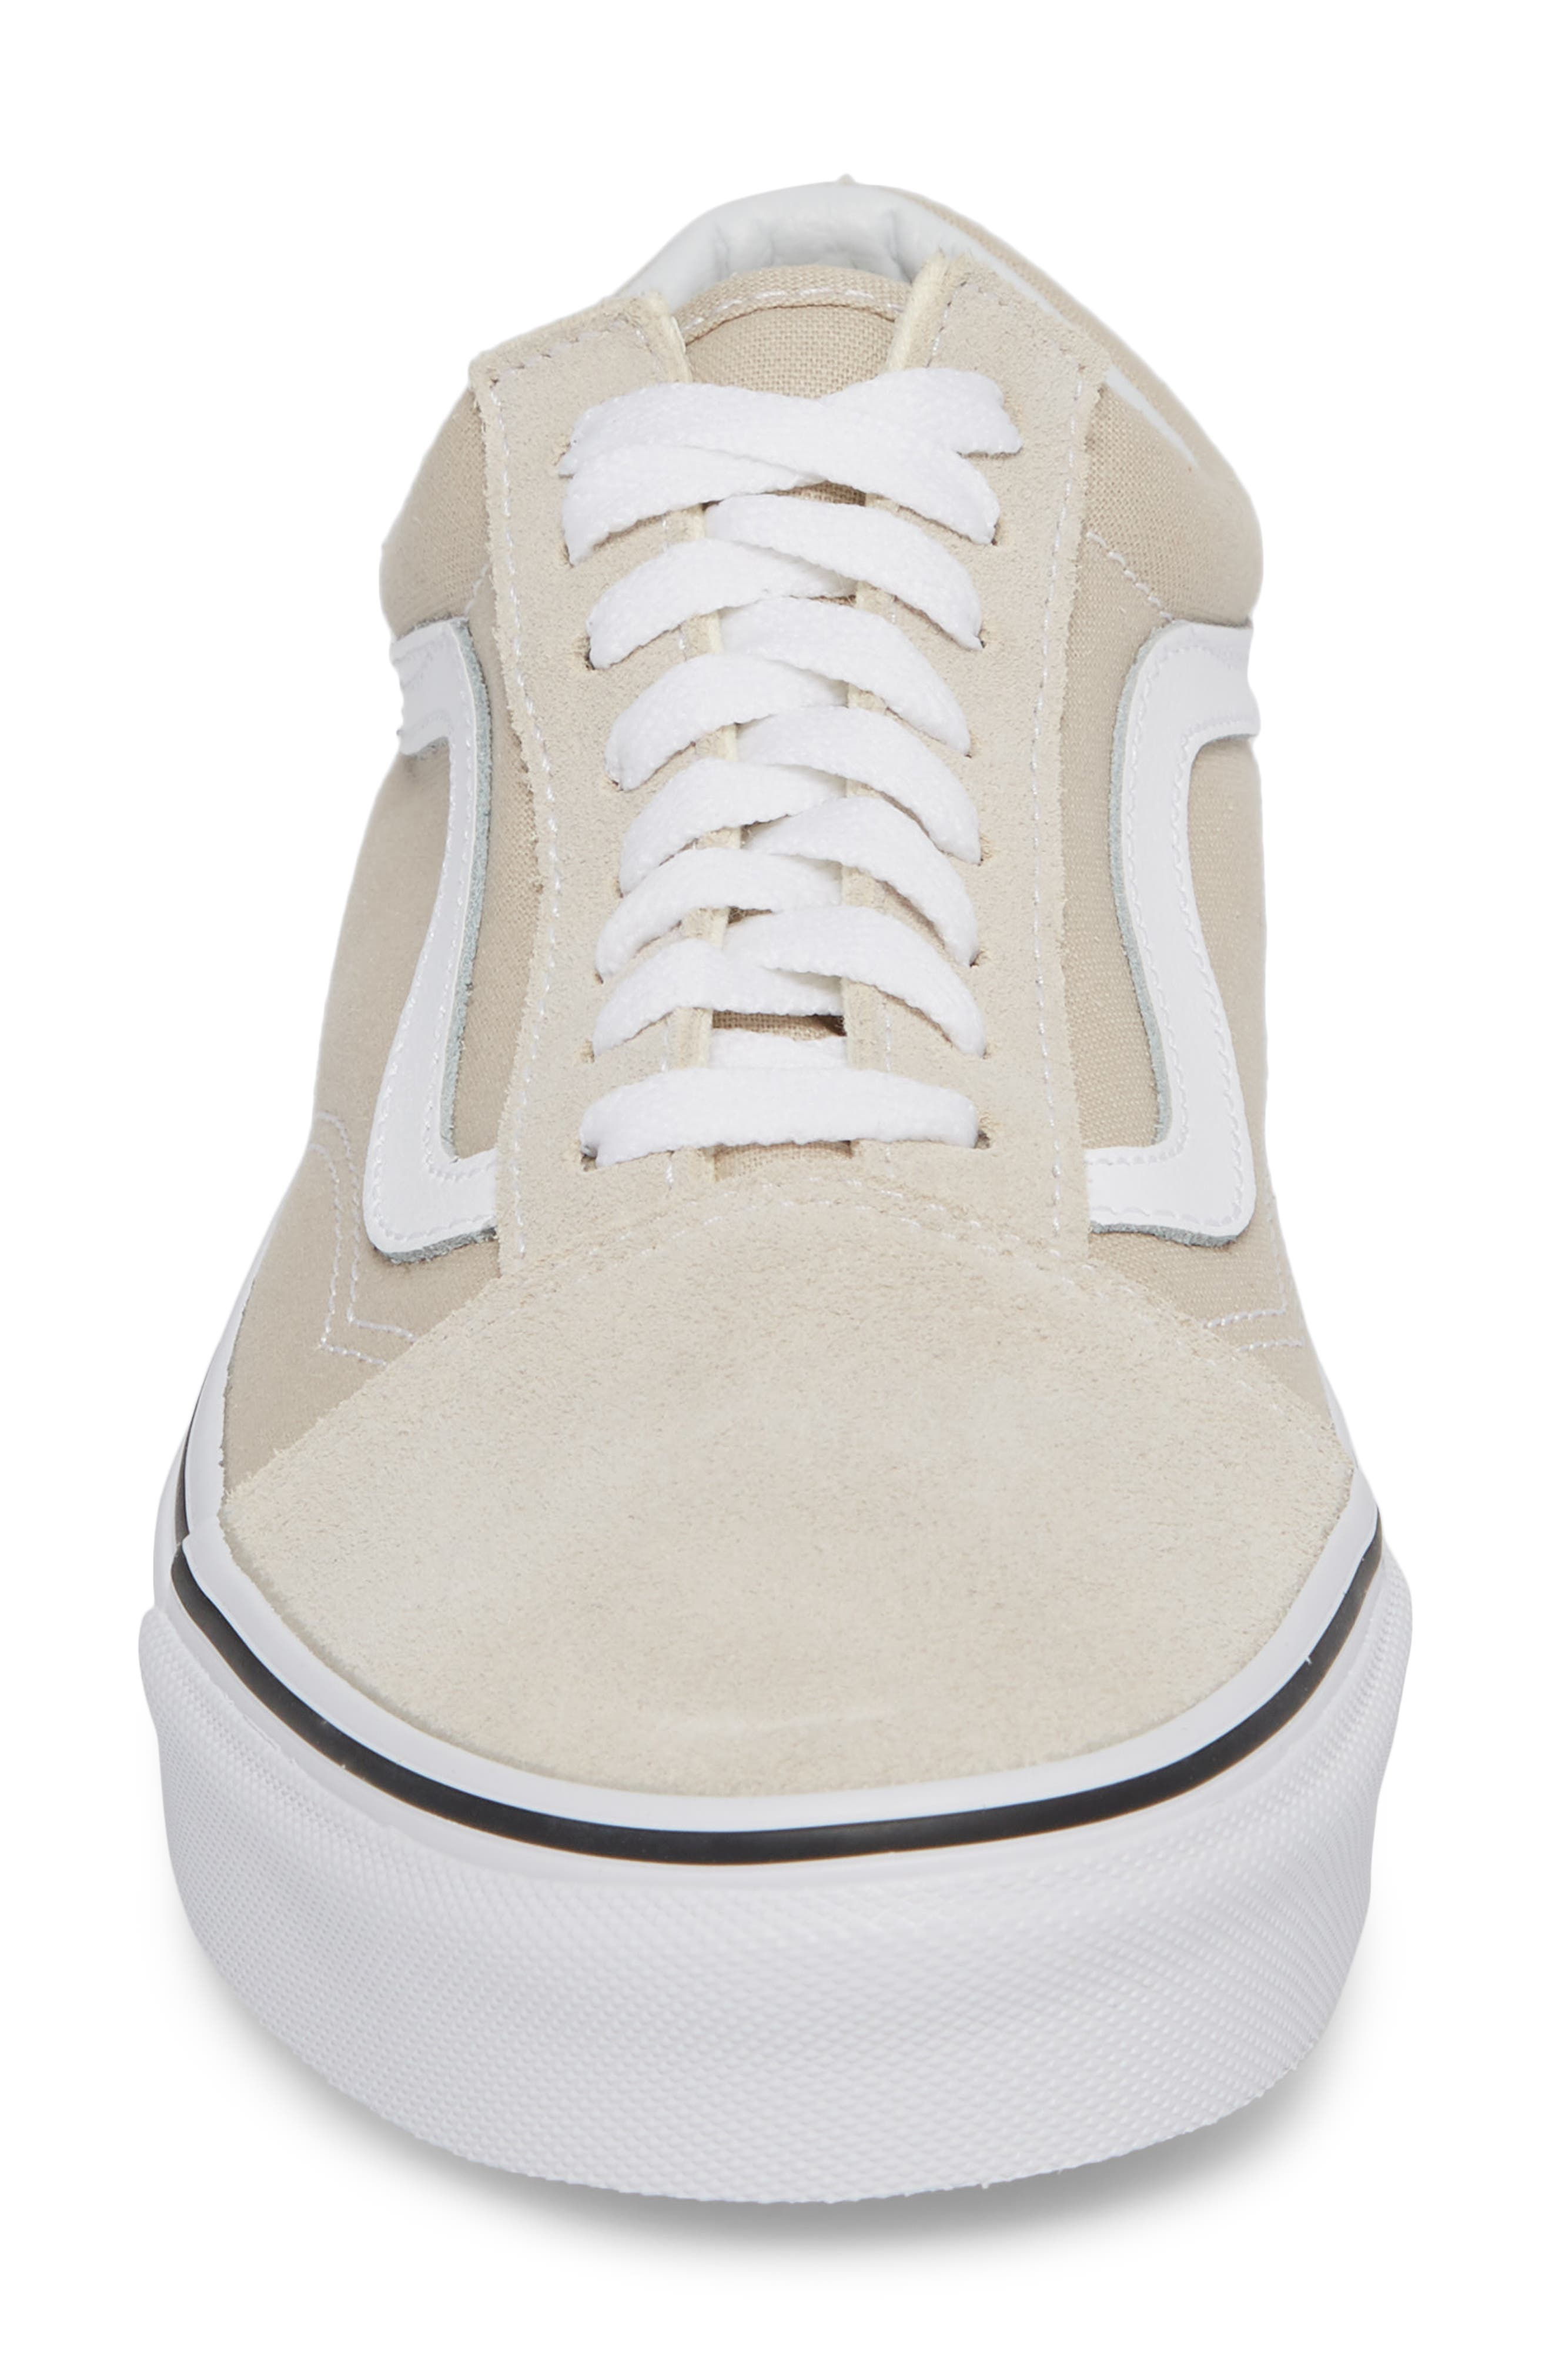 Old Skool Low Top Sneaker,                             Alternate thumbnail 4, color,                             Silver Lining/ White Leather